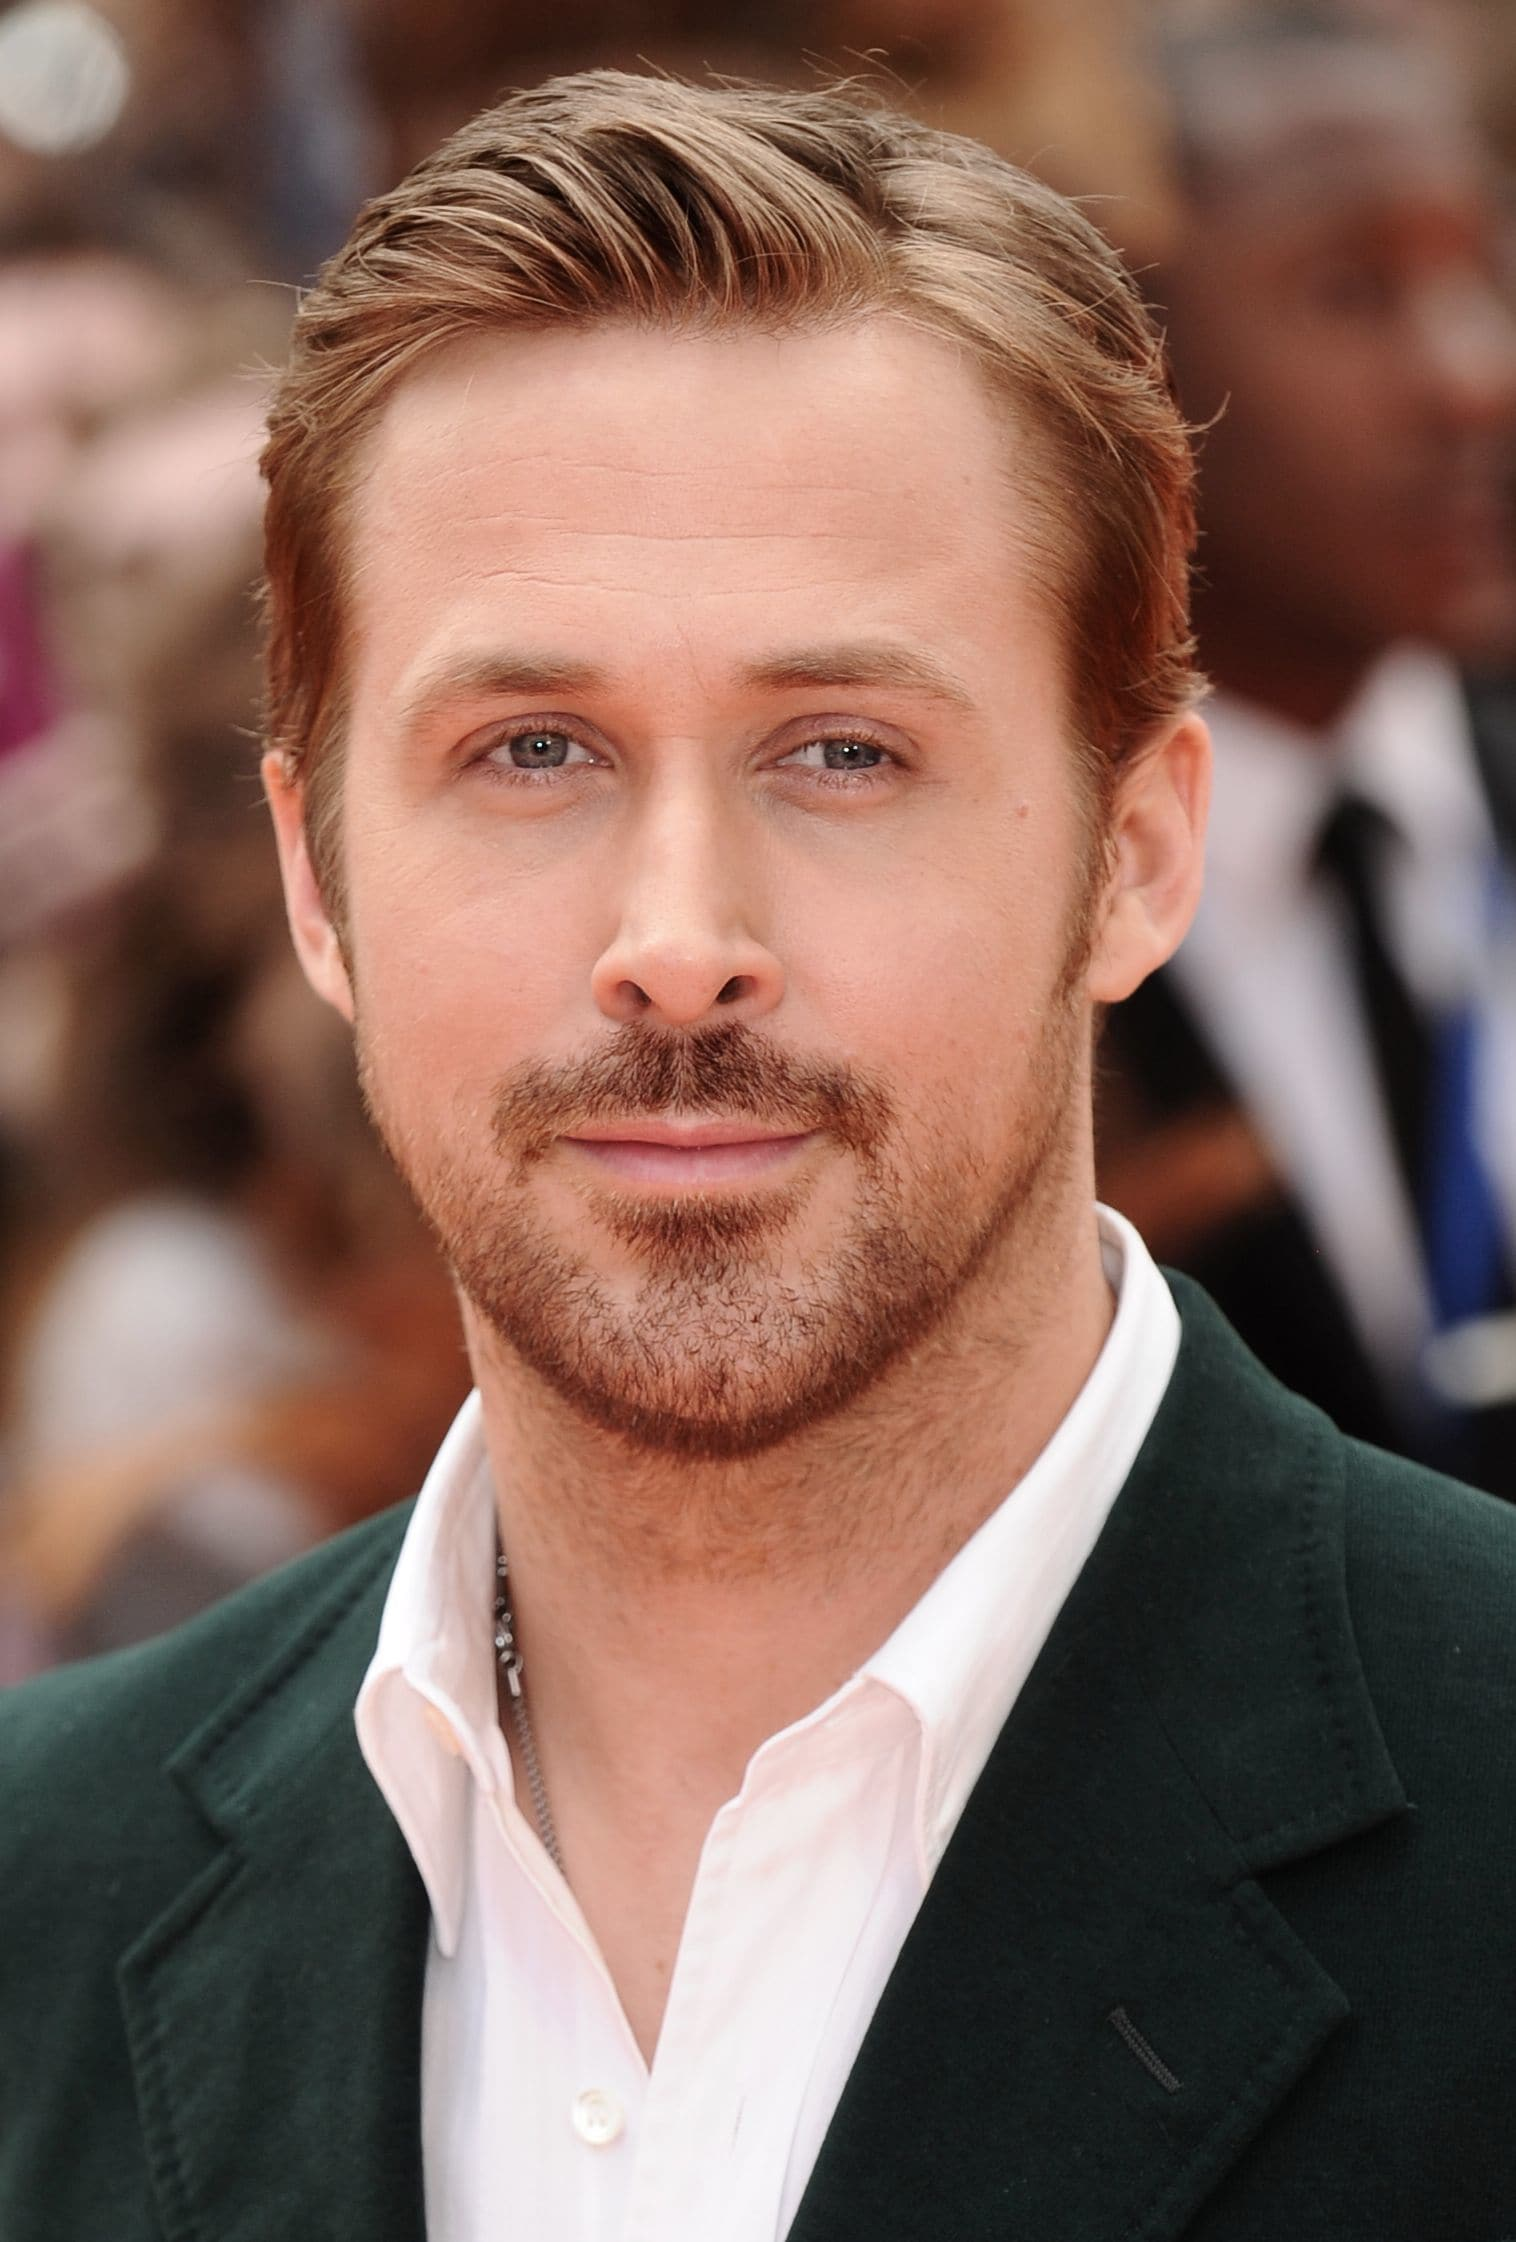 Ryan Gosling haircut: Ryan Gosling with a comb over haircut and facial hair, wearing a green suit